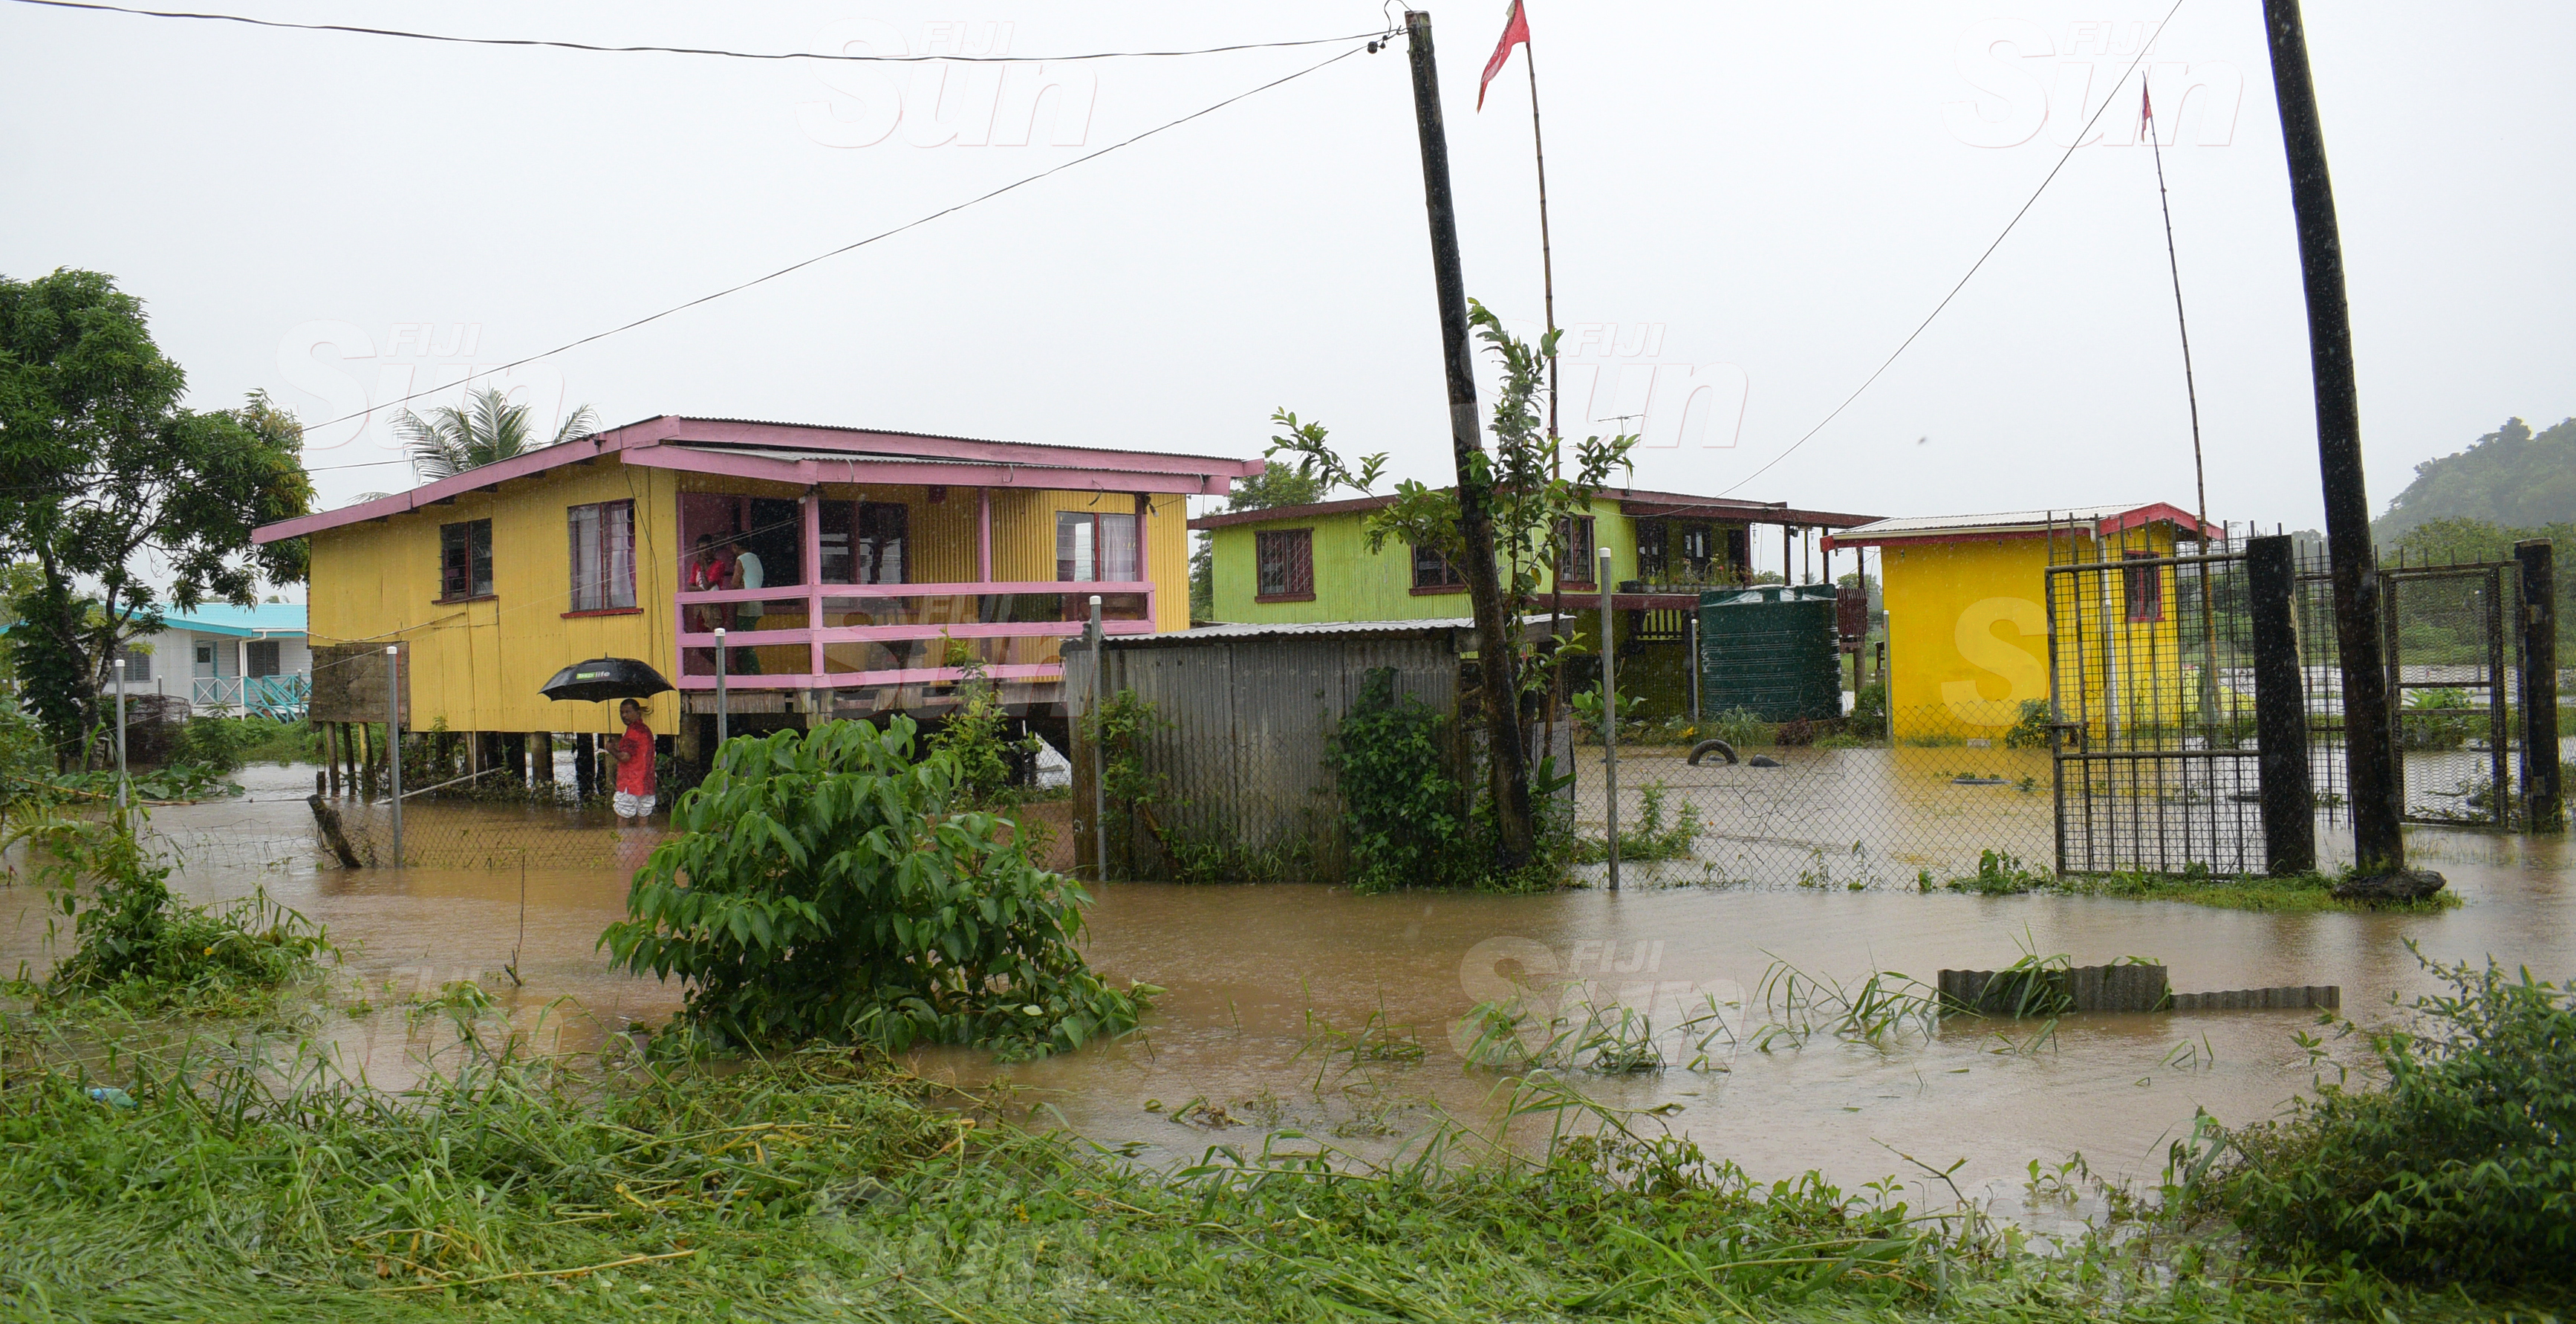 Continues heavy rain resulted in flash flooding at Korociriciri in Nausori on March 20, 2020. Photo: Ronald Kumar.